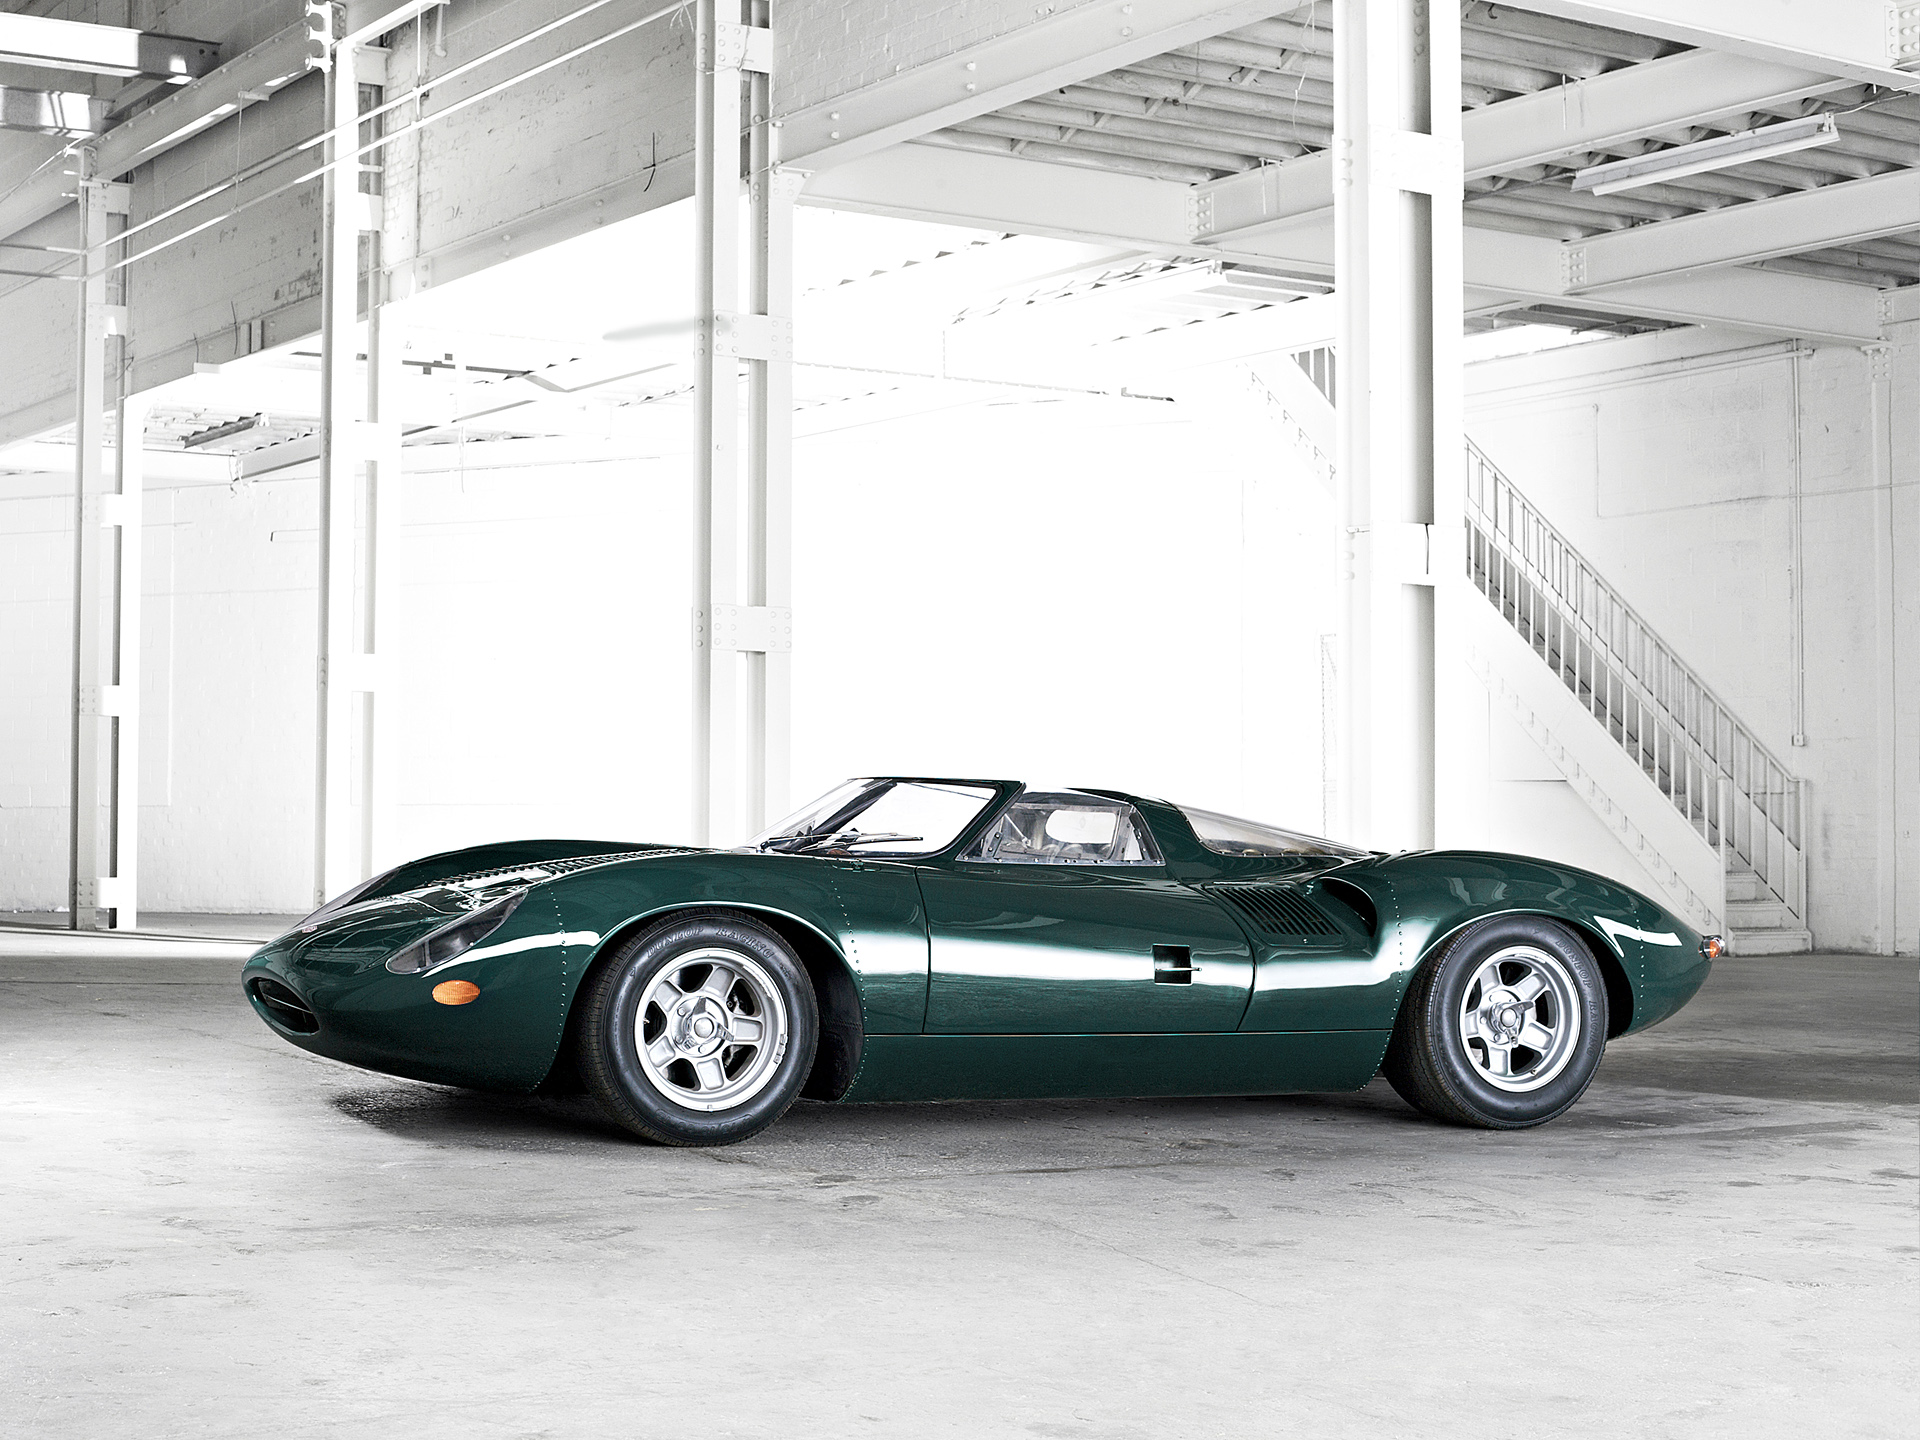 Jaguar Xj13 Blueprint Jaguar Xj13 A Series Of Unfortunate Events Jack Shepherdson